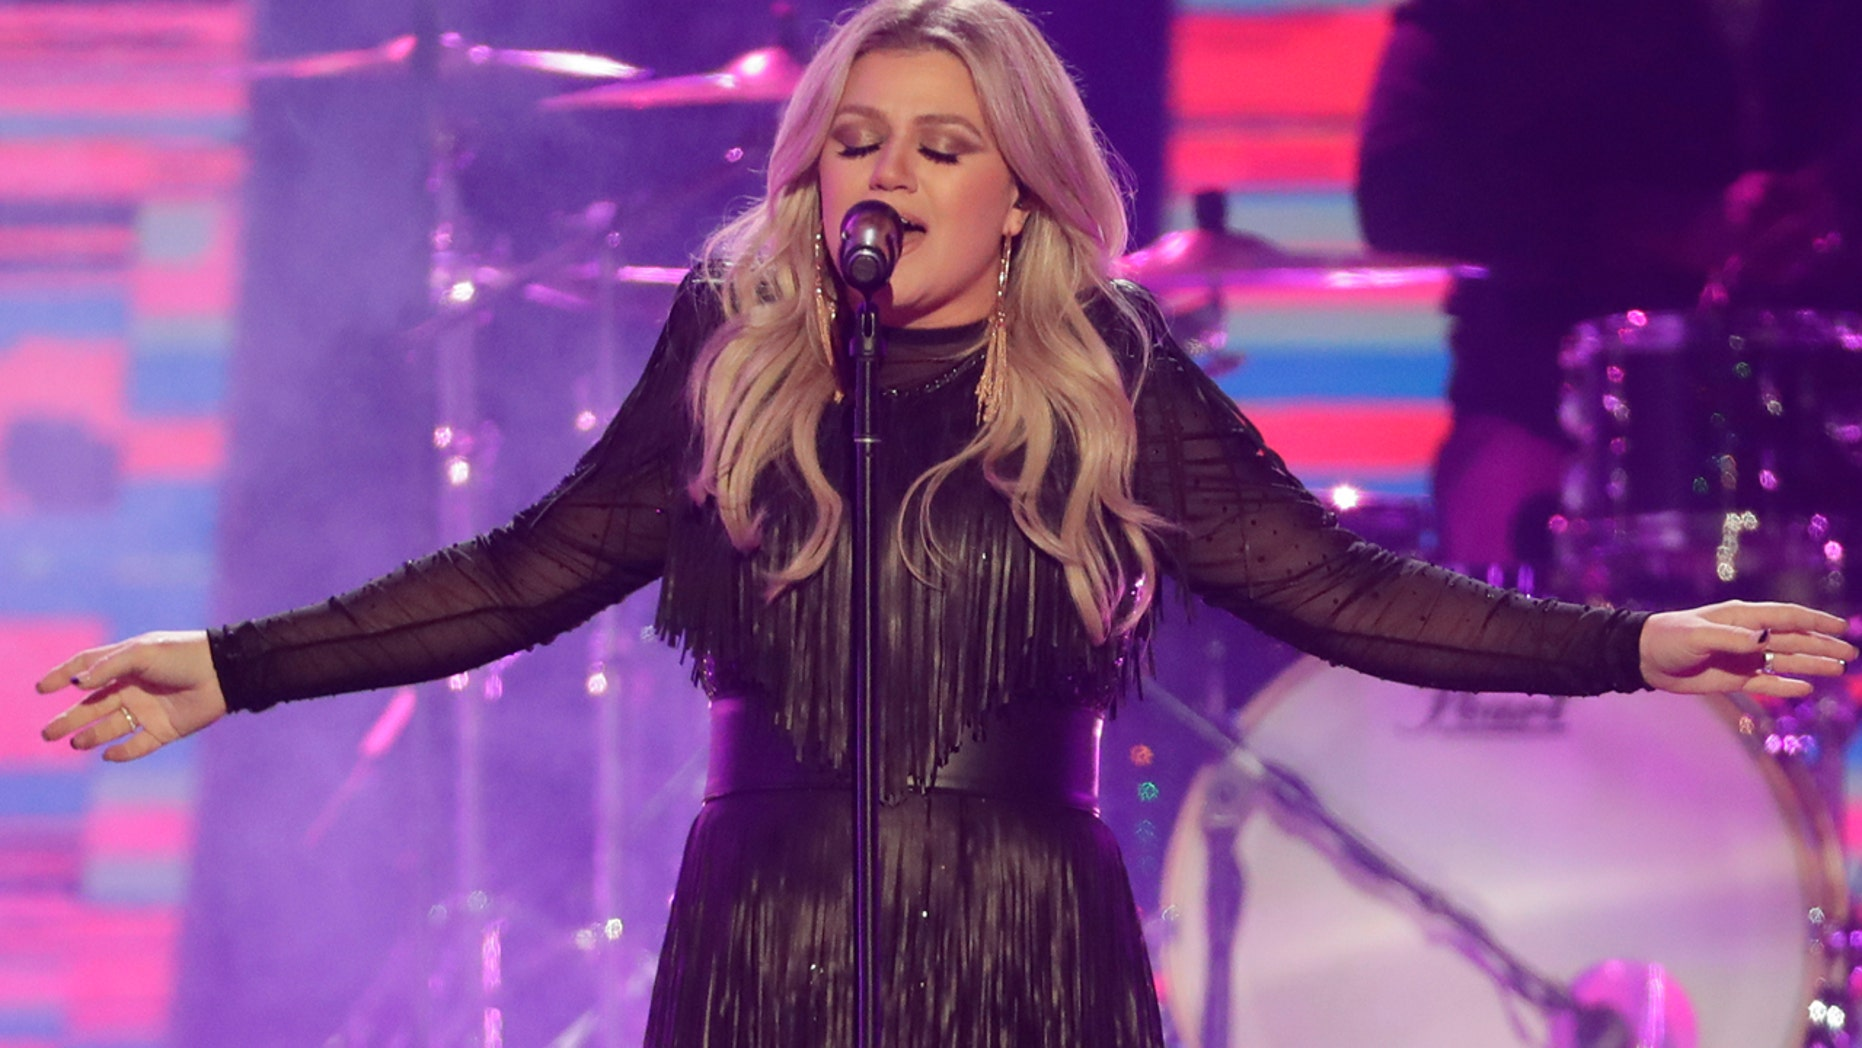 Super star singer Kelly Clarkson to perform as the opening act headliner for the U.S. Open Tennis Tournament in August.